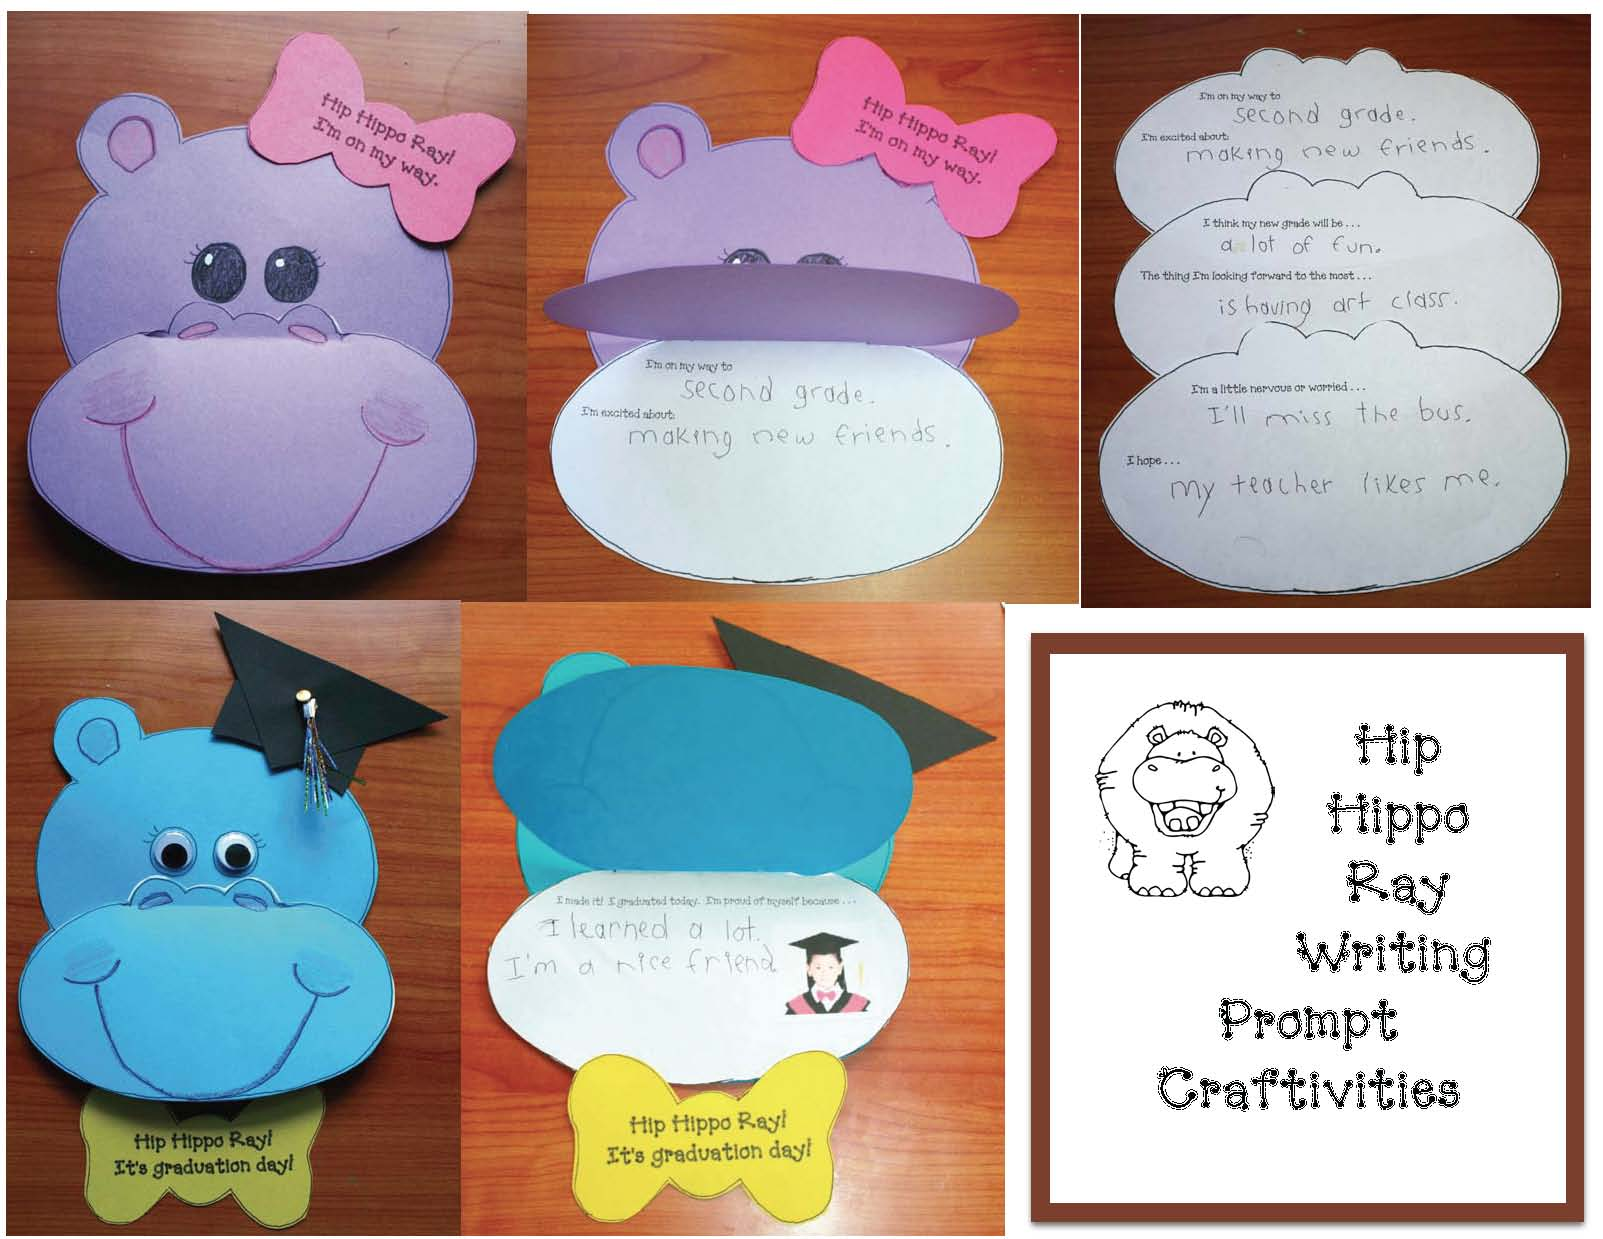 hippo crafts, hippo activities, end of the year activities, end of the year crafts, ideas for the end of the year, ideas for the last week of school, writing prompts for the end of the year, summer writing prompts, end of the year writing prompts, june writing prompts, daily 5 for the end of they year, graduation activities, graduation writing prompts, graduation crafts, kindergarten graduation ideas, preschool graduation ideas, graduation bookmarks. end of the year bulletin boards, alphabet scavenger hunt